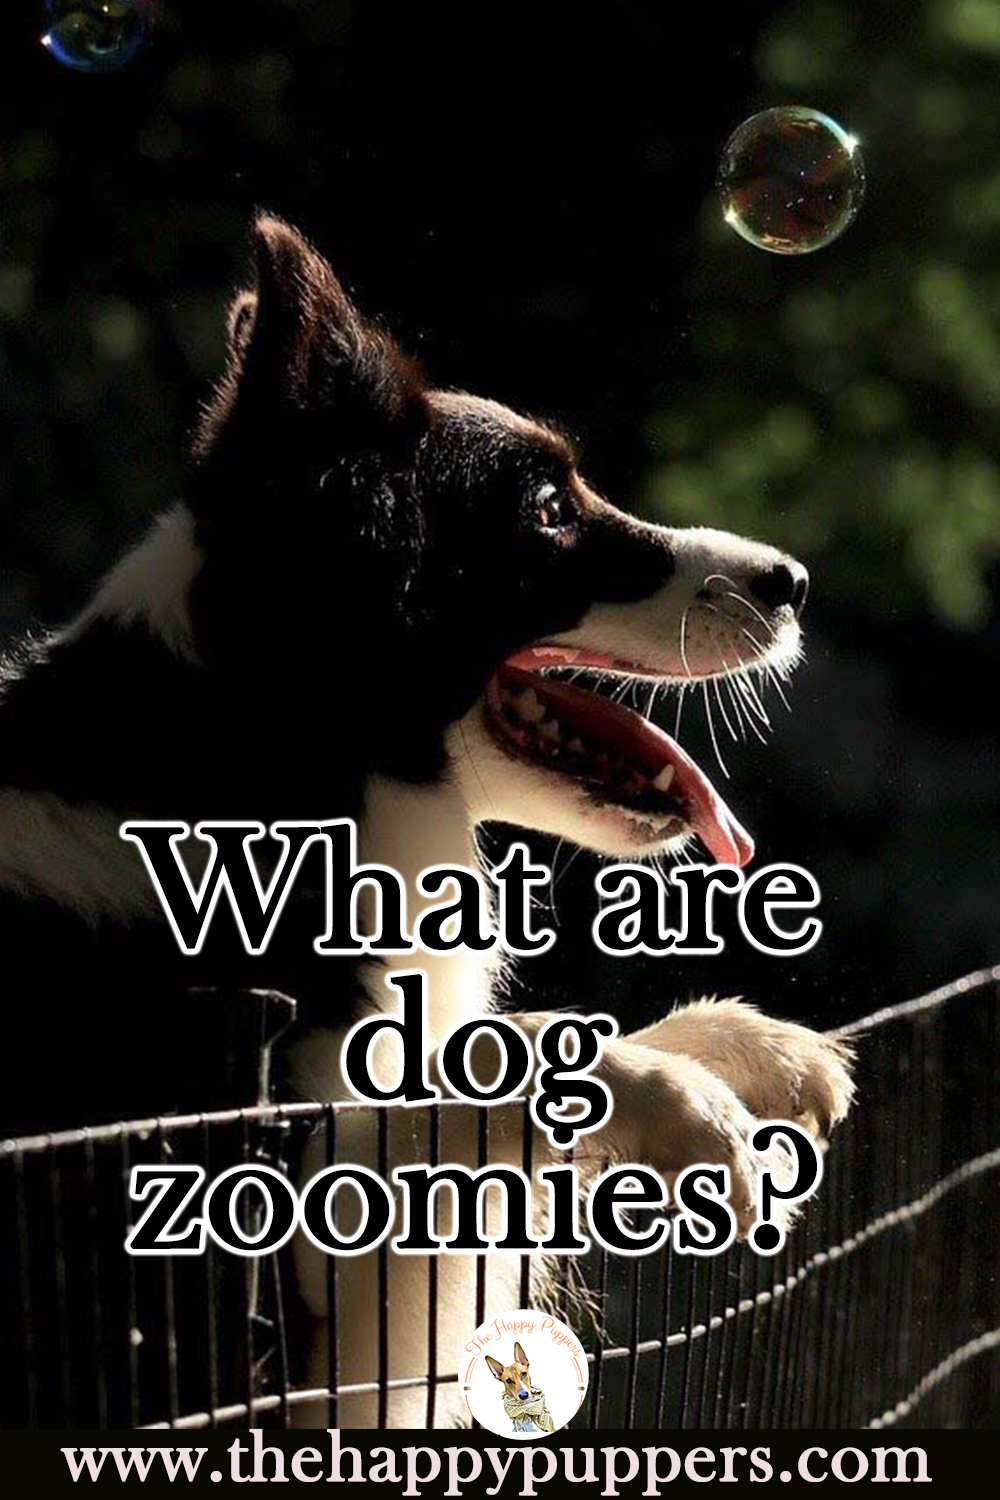 What are dog zoomies?